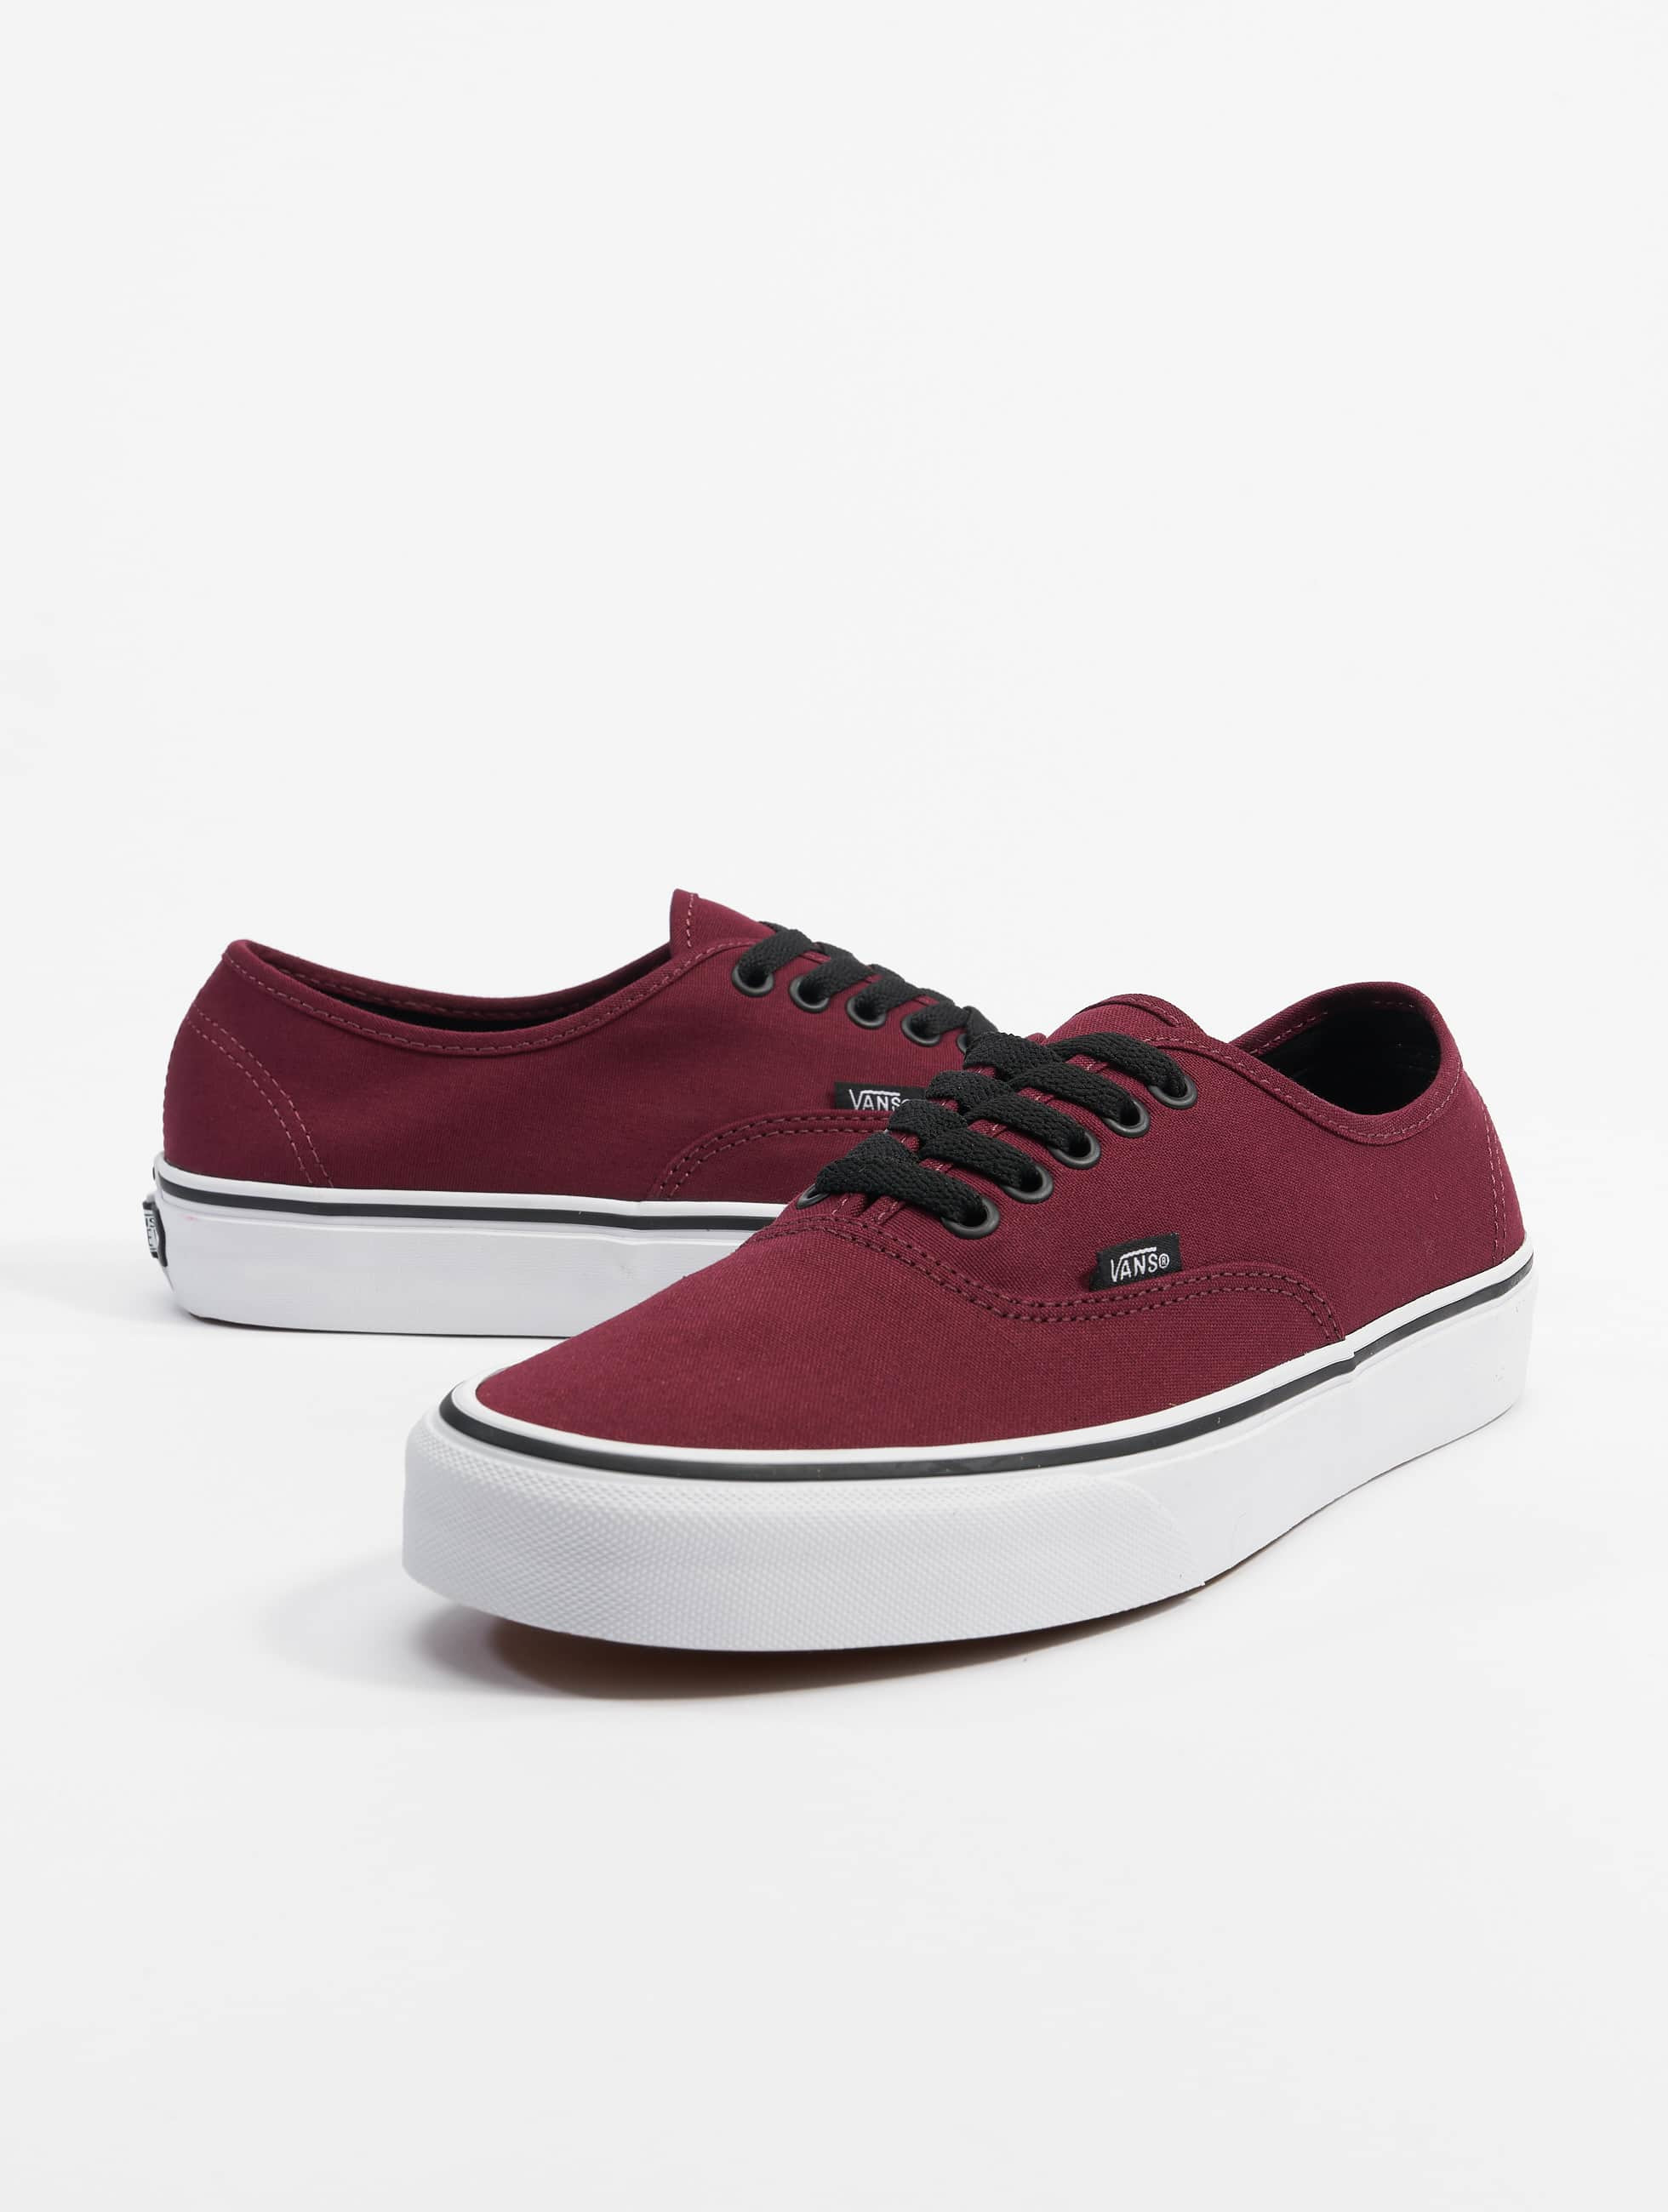 Vans Authentic Sneakers Port RoyalBlack